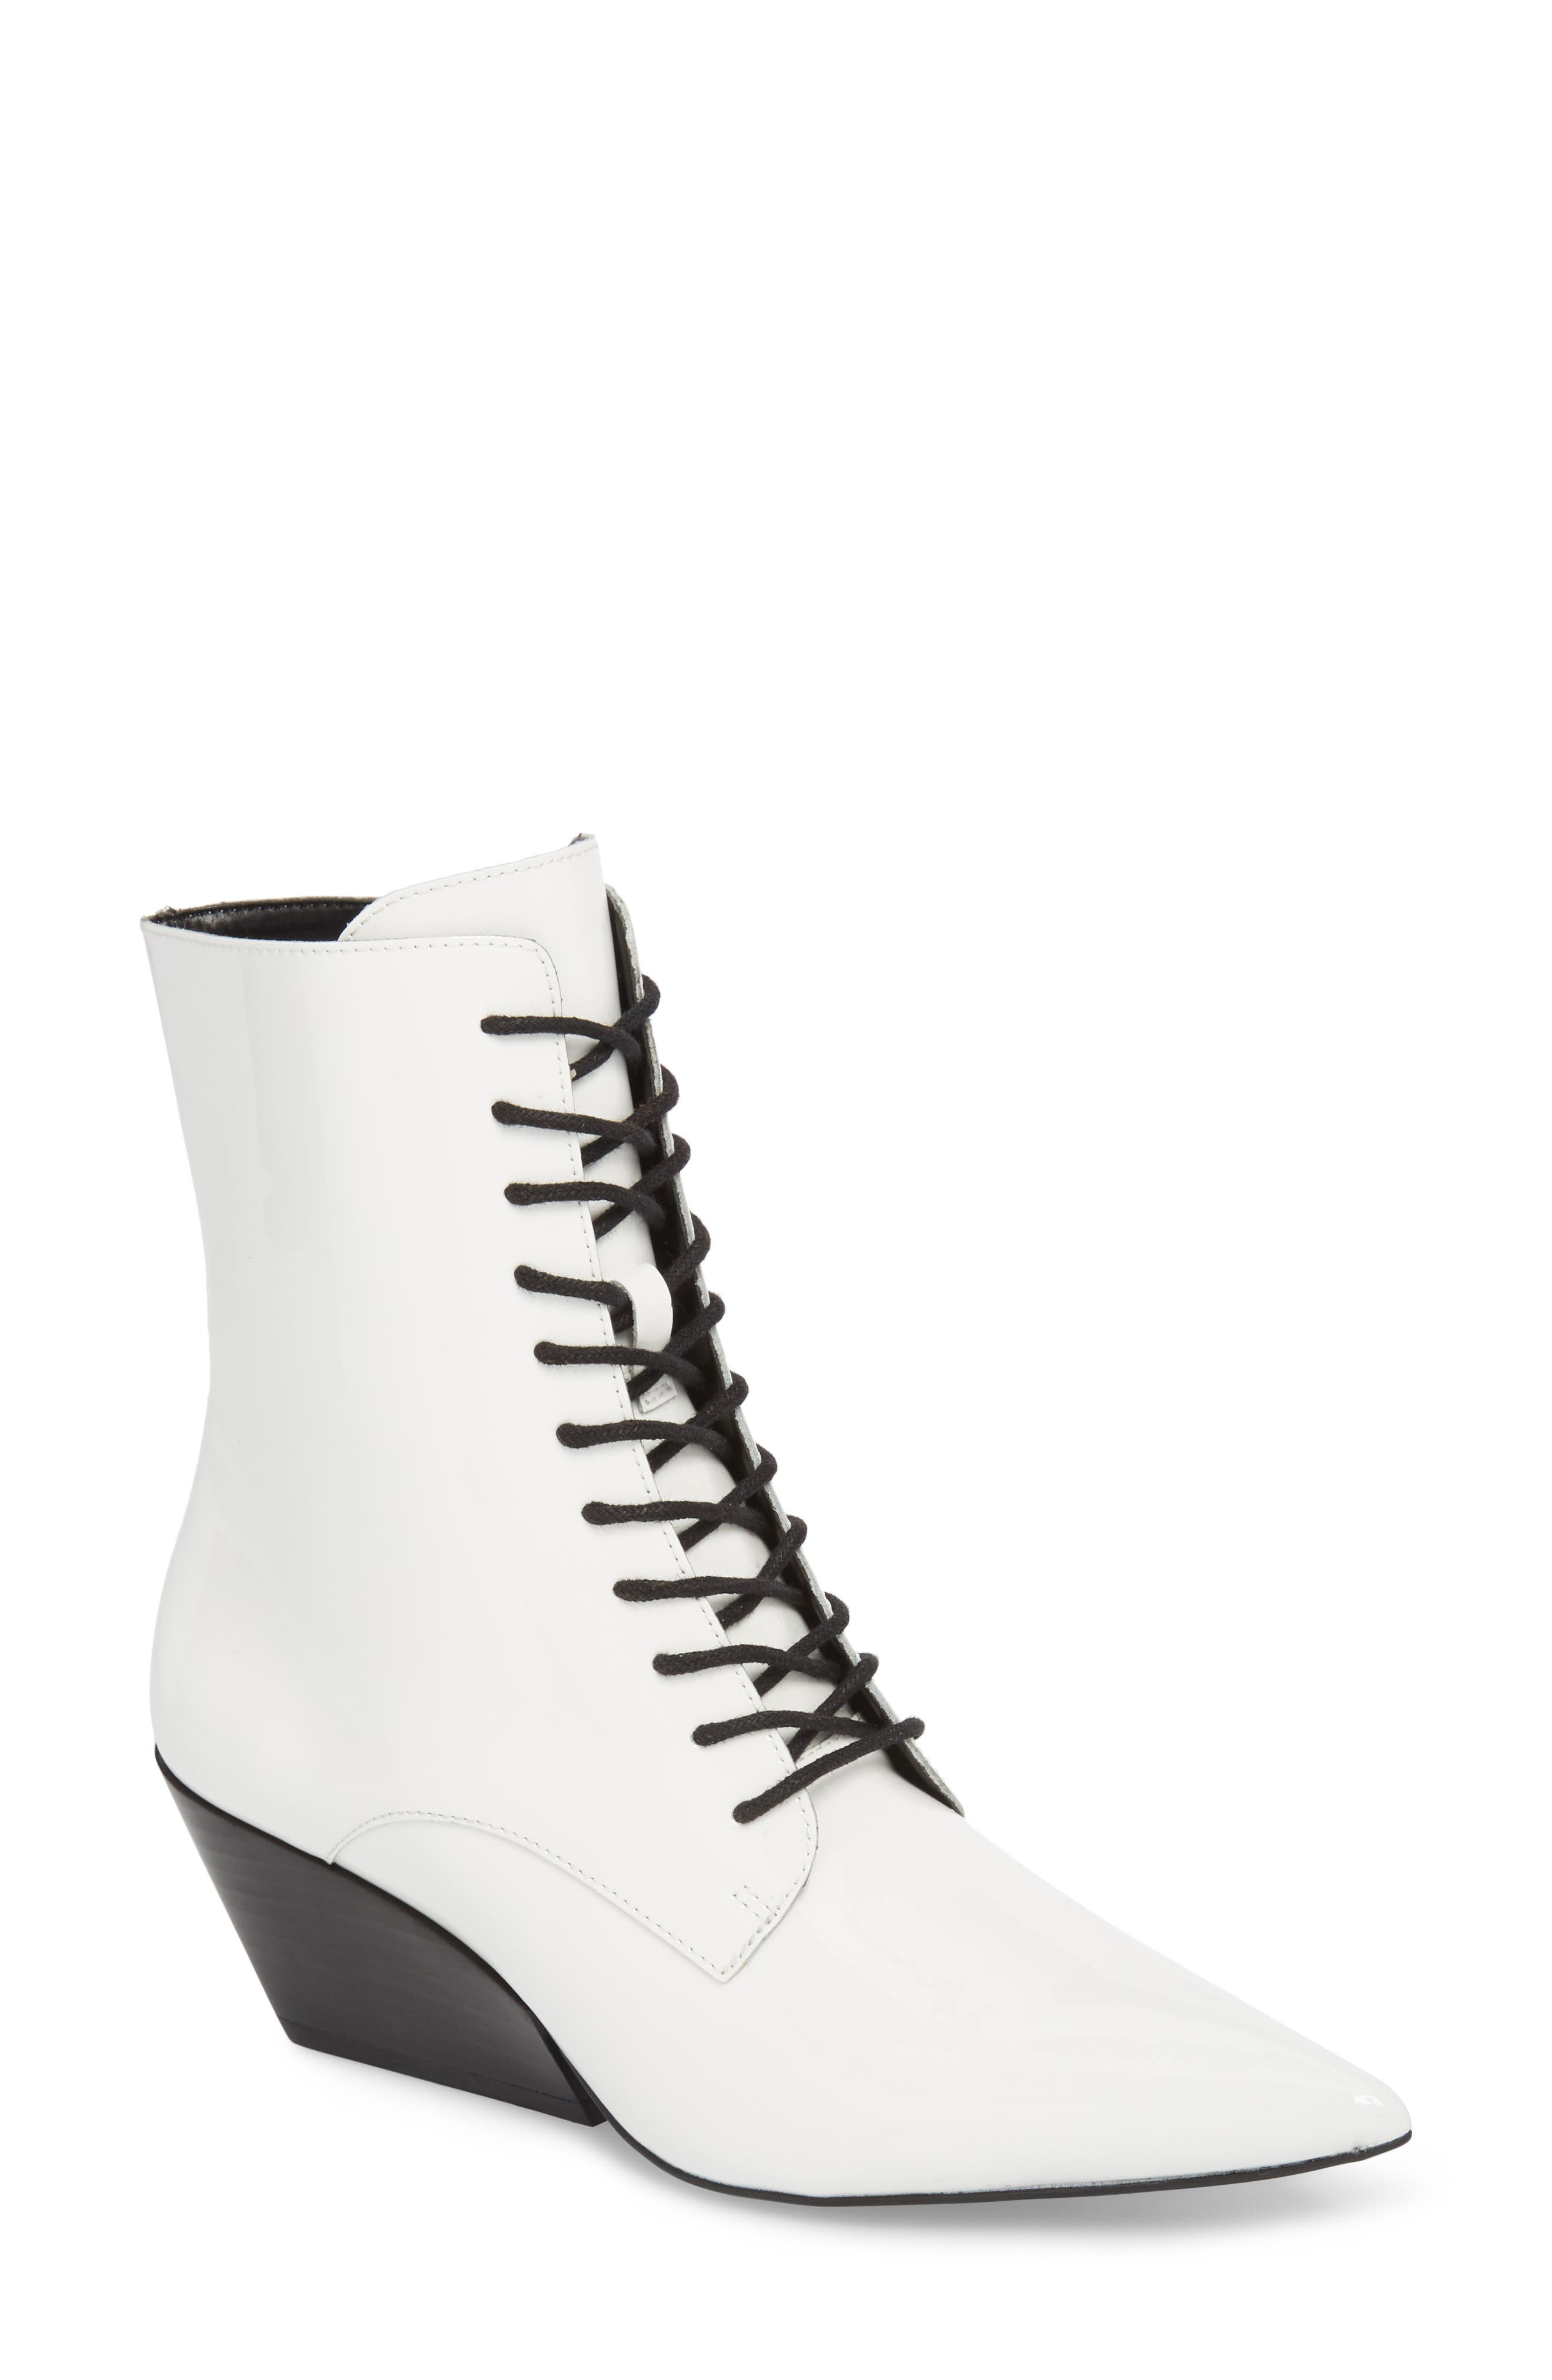 Faith Pointy Toe Laced Bootie,                             Main thumbnail 1, color,                             White Patent